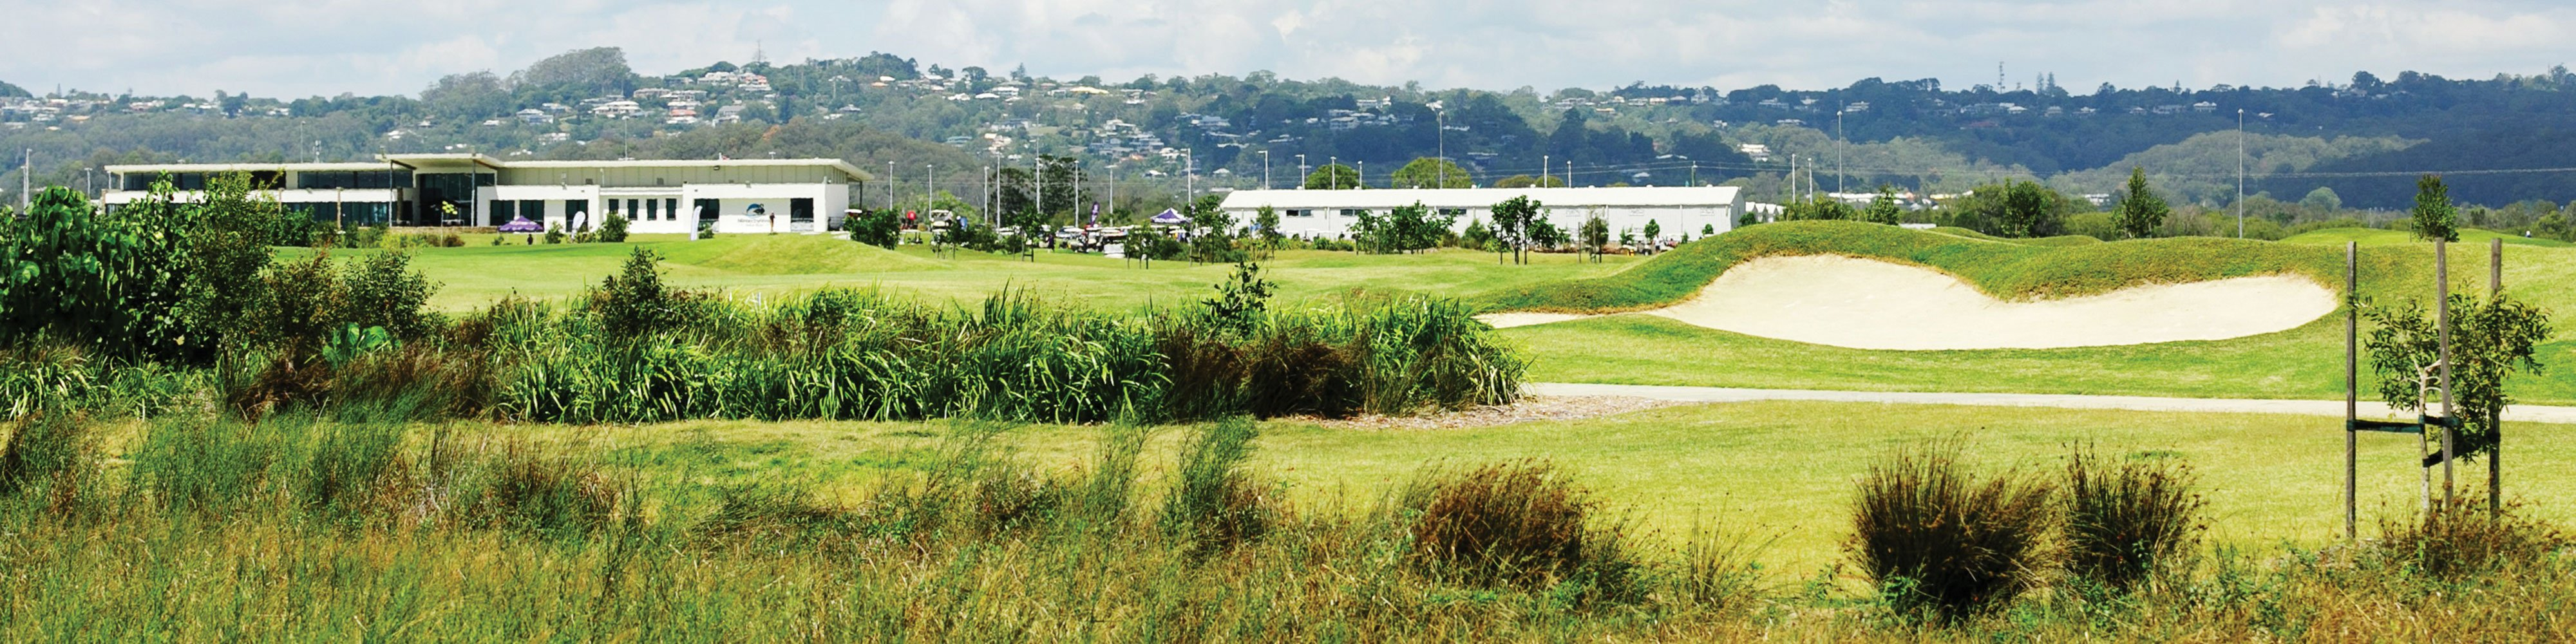 Maroochy River Golf Club